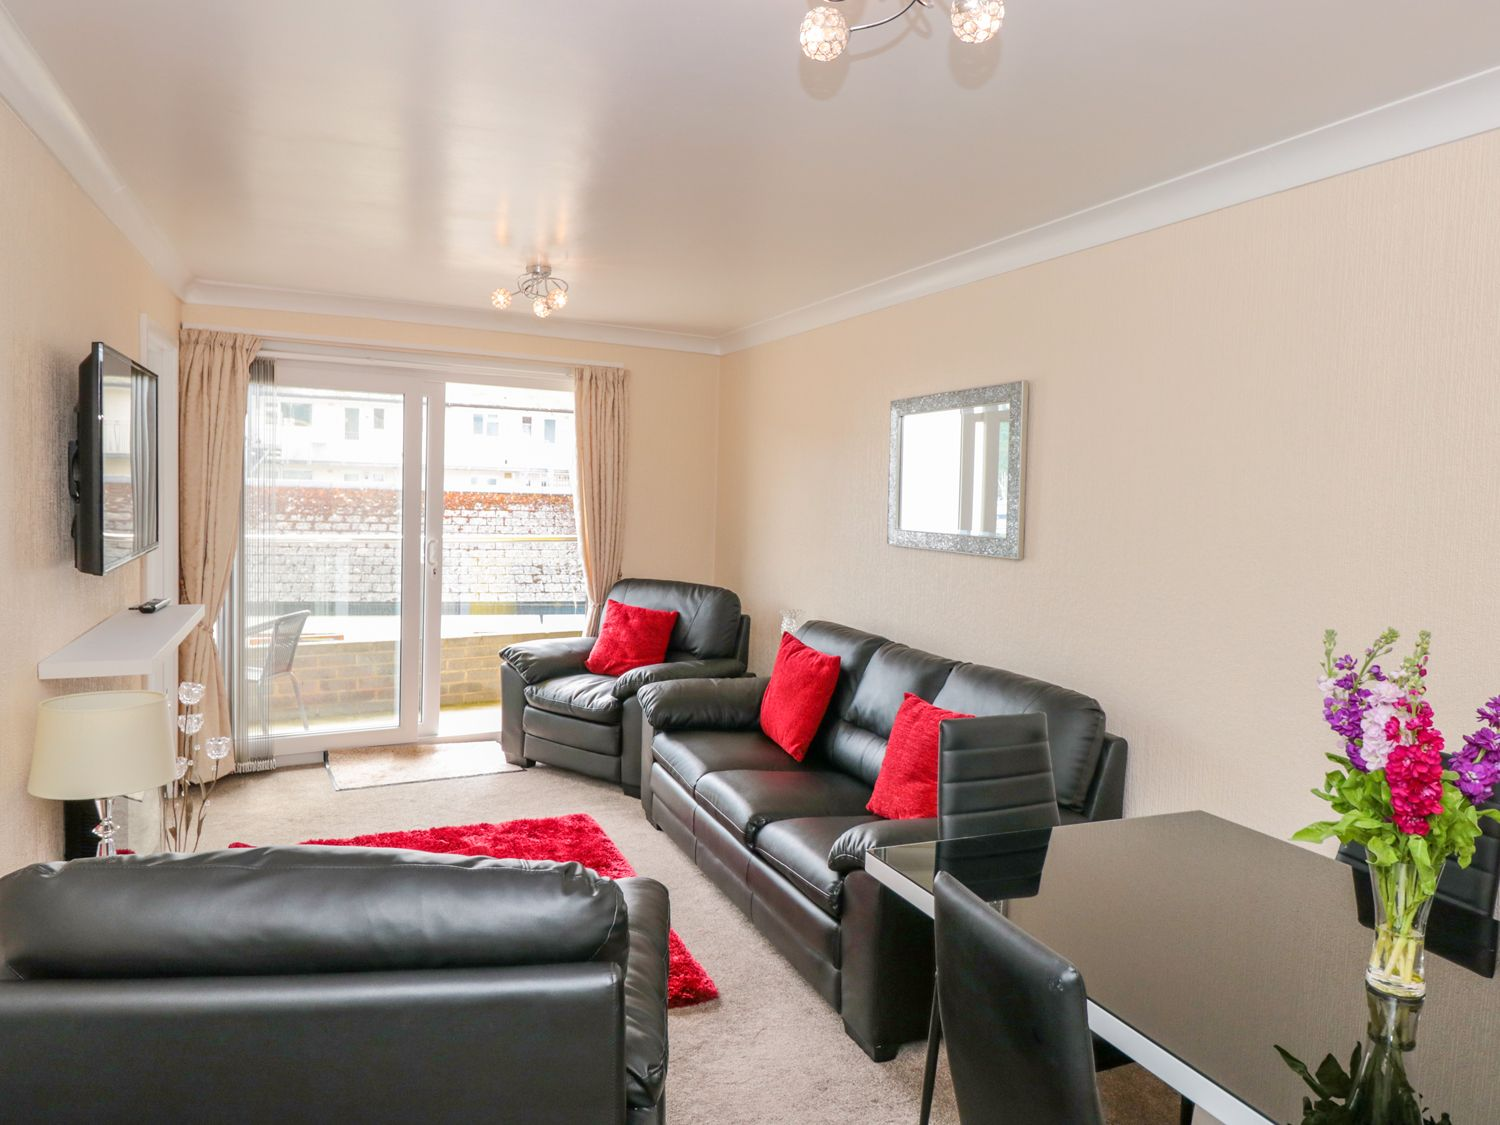 1 Dartside Court - Devon - 1010429 - photo 1